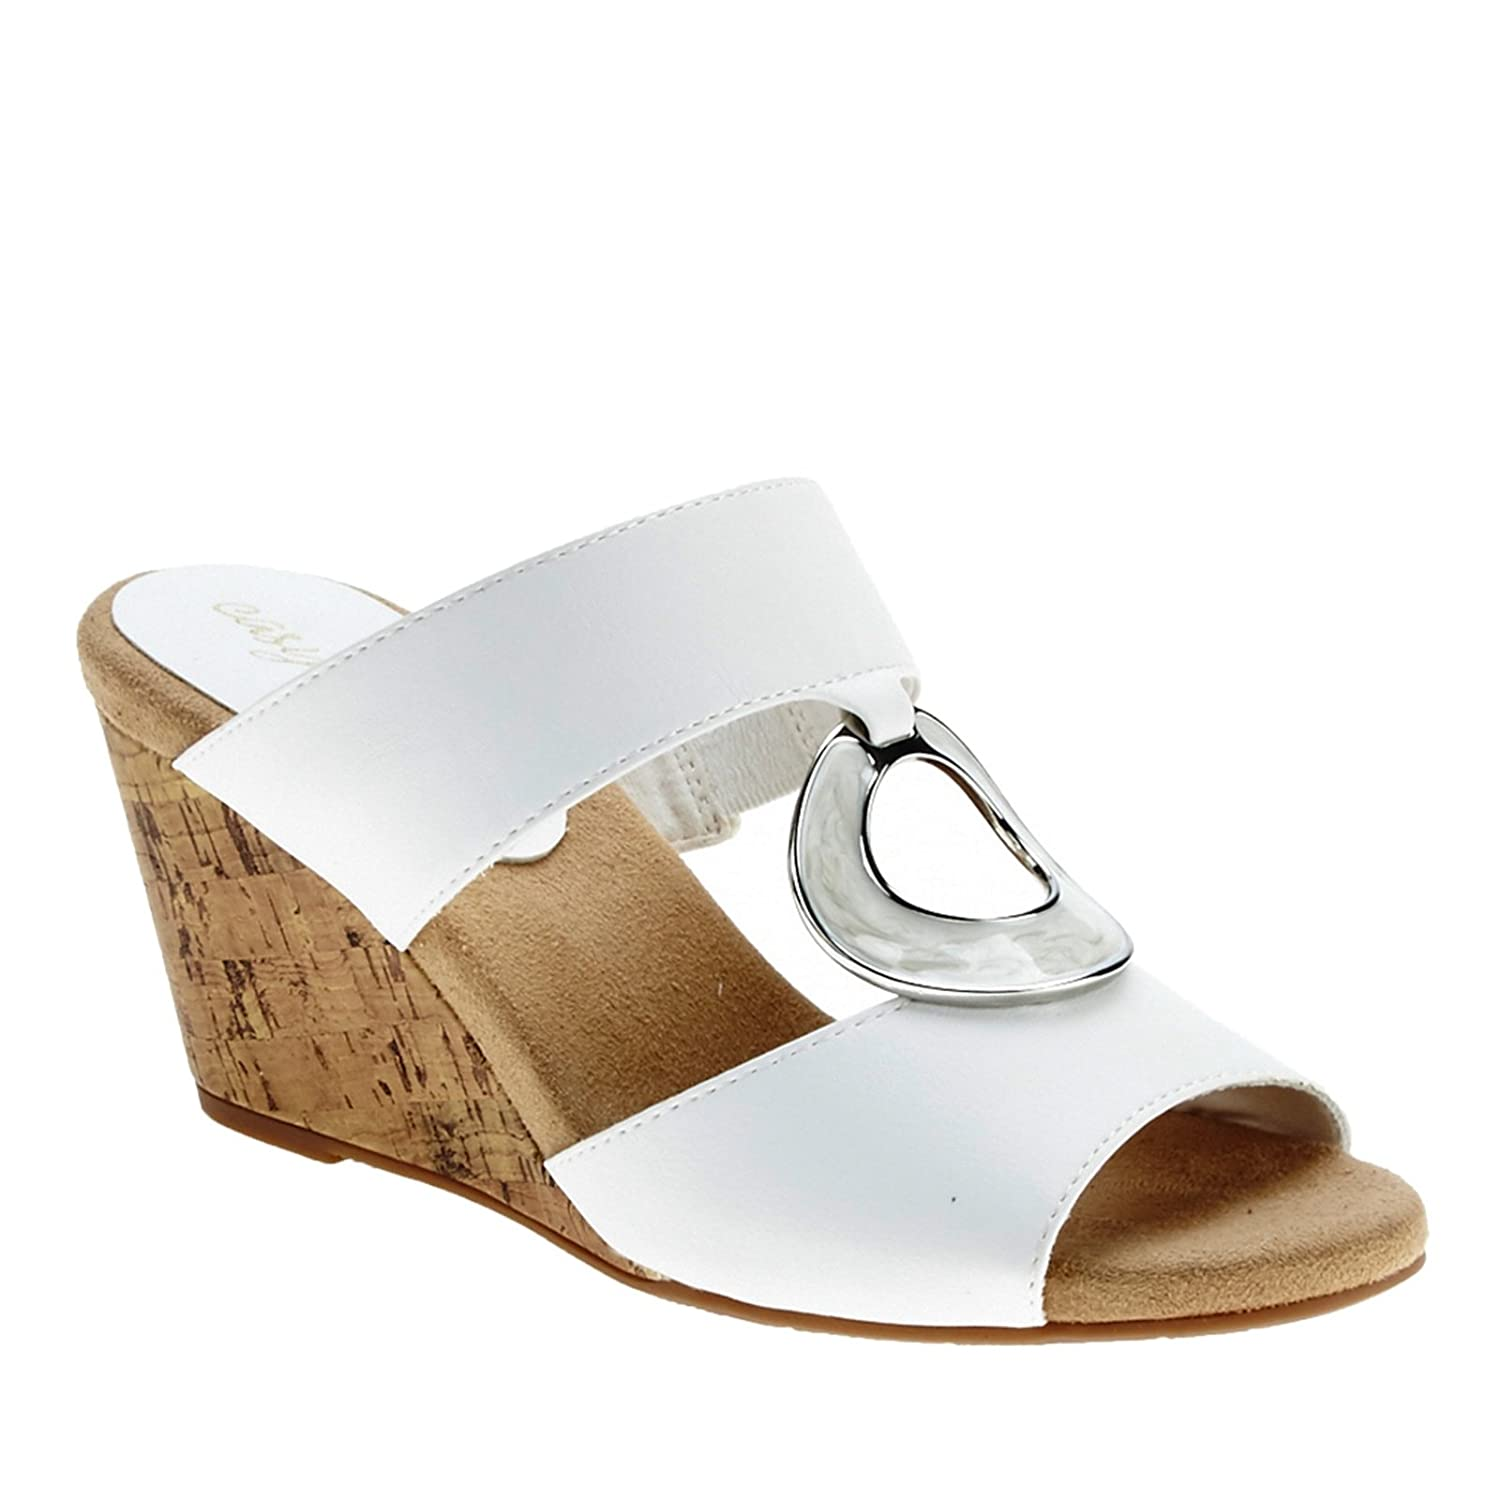 Easy Street Women's Ever Wedge US|White Sandal B01AA7SR52 6.5 B(M) US|White Wedge b624d9